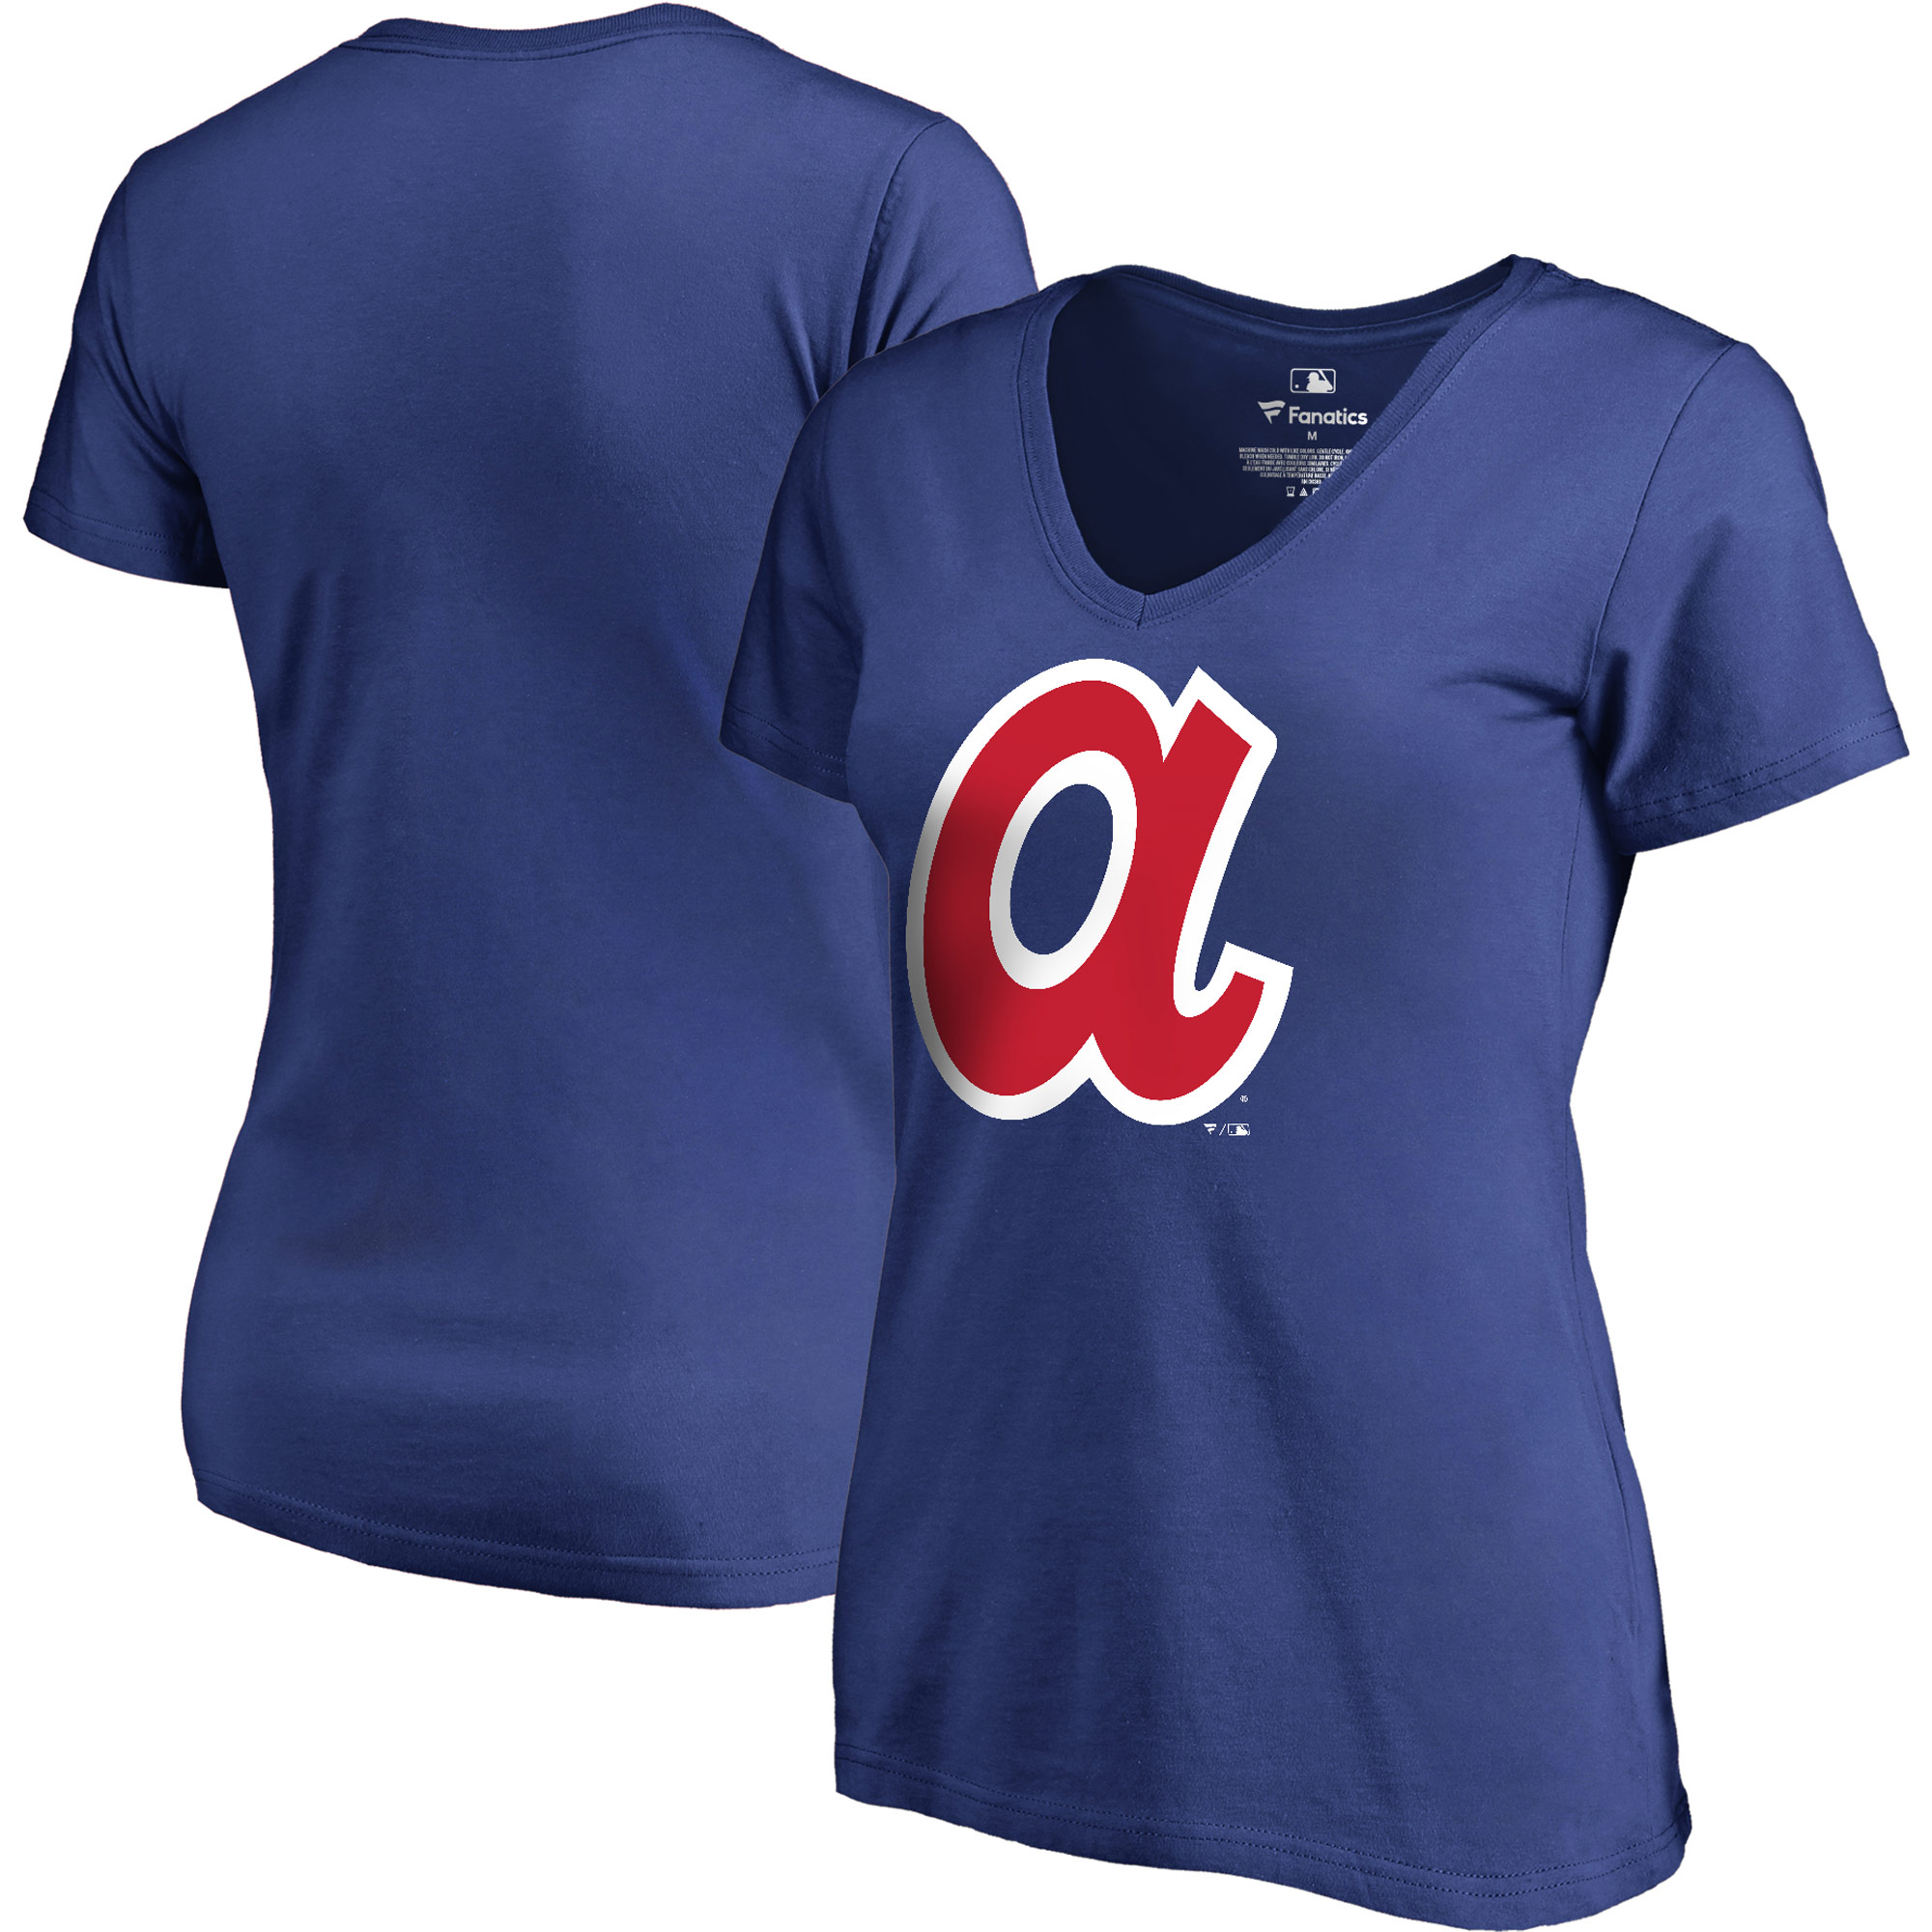 Atlanta Braves Fanatics Branded Women's Plus Size Cooperstown Collection Huntington V-Neck T-Shirt - Royal